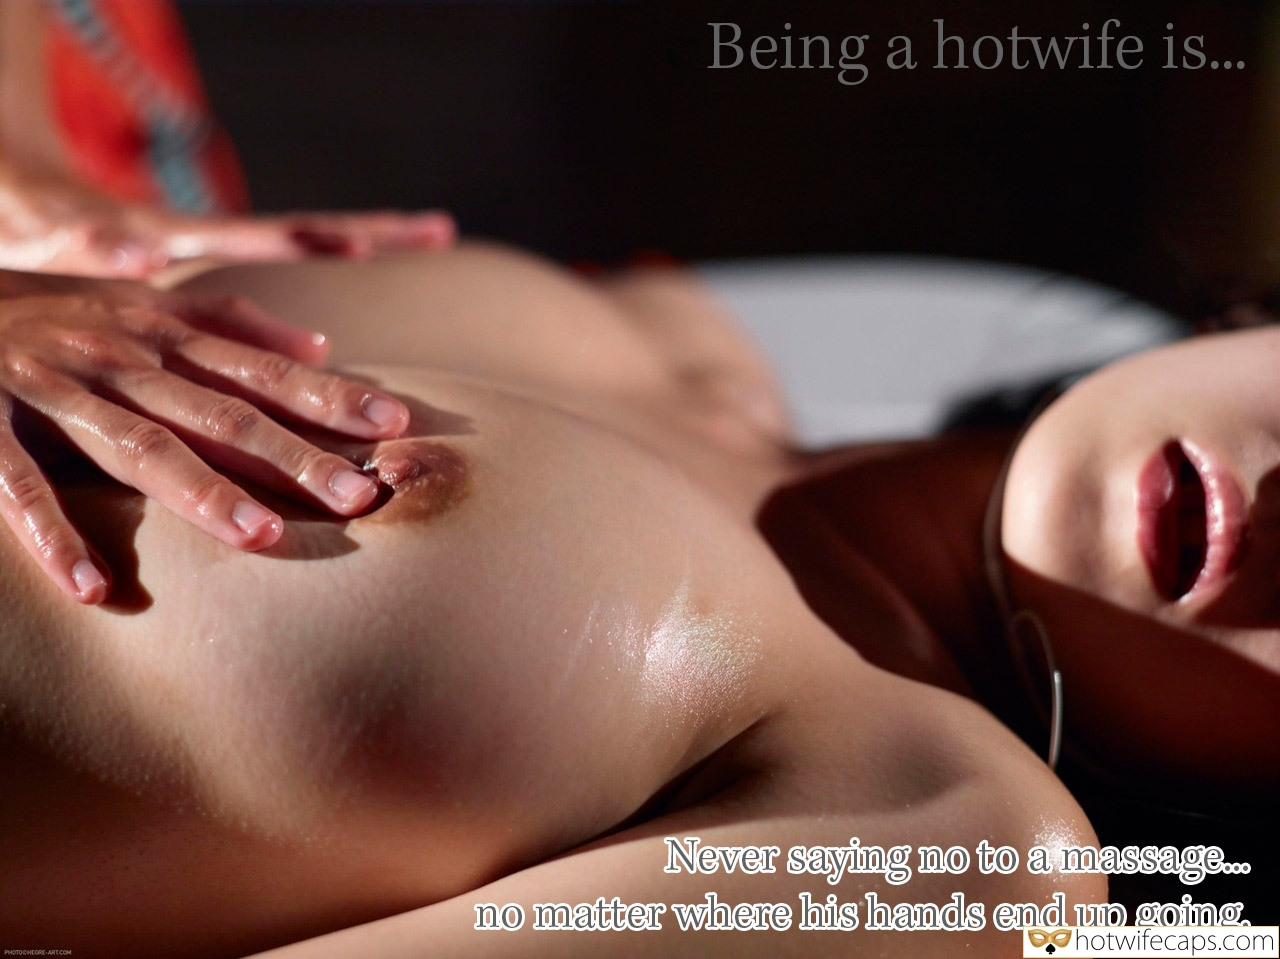 Challenges and Rules hotwife caption: Being a hotwife is.. Never saying no to a massage.o no matter where his hands end up going. PHOTOCHEORE-ARTCOM Wife Massaging Her Oily Tits and Nipples